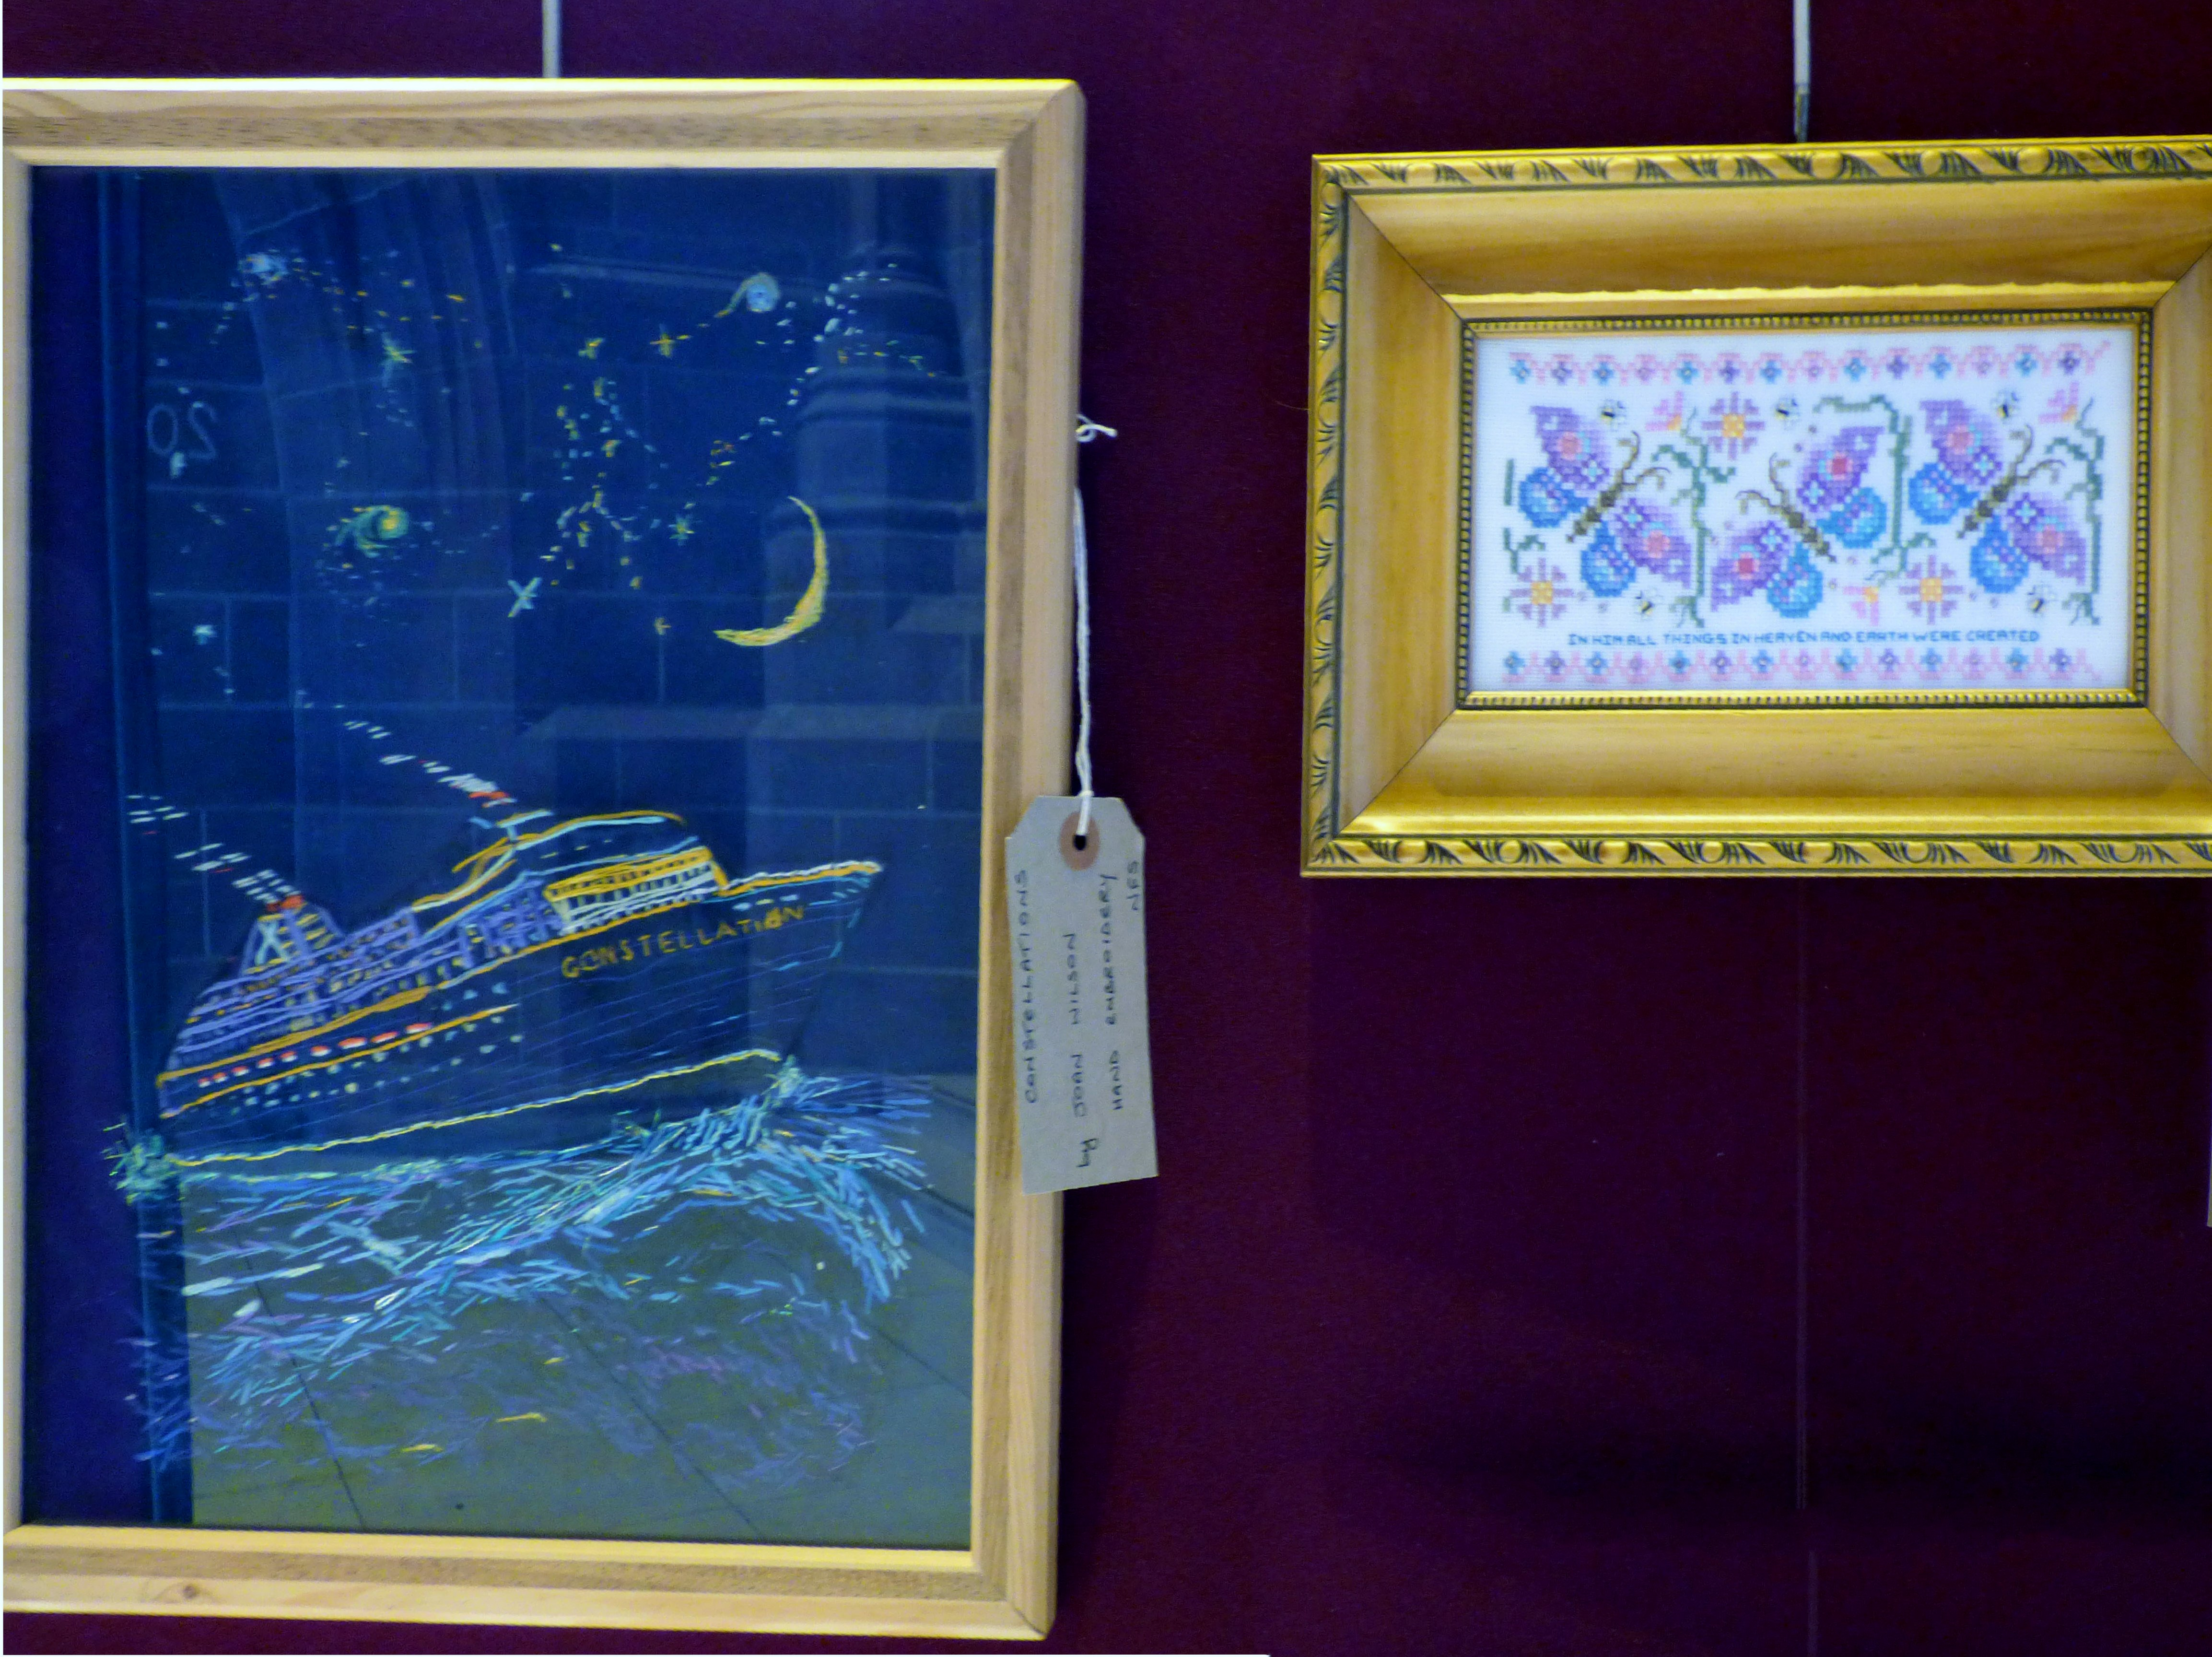 CONSTELLATIONS by Joan Wilson and ALL THINGS by Ann Thyer at 60 Glorious Years exhibition 2016